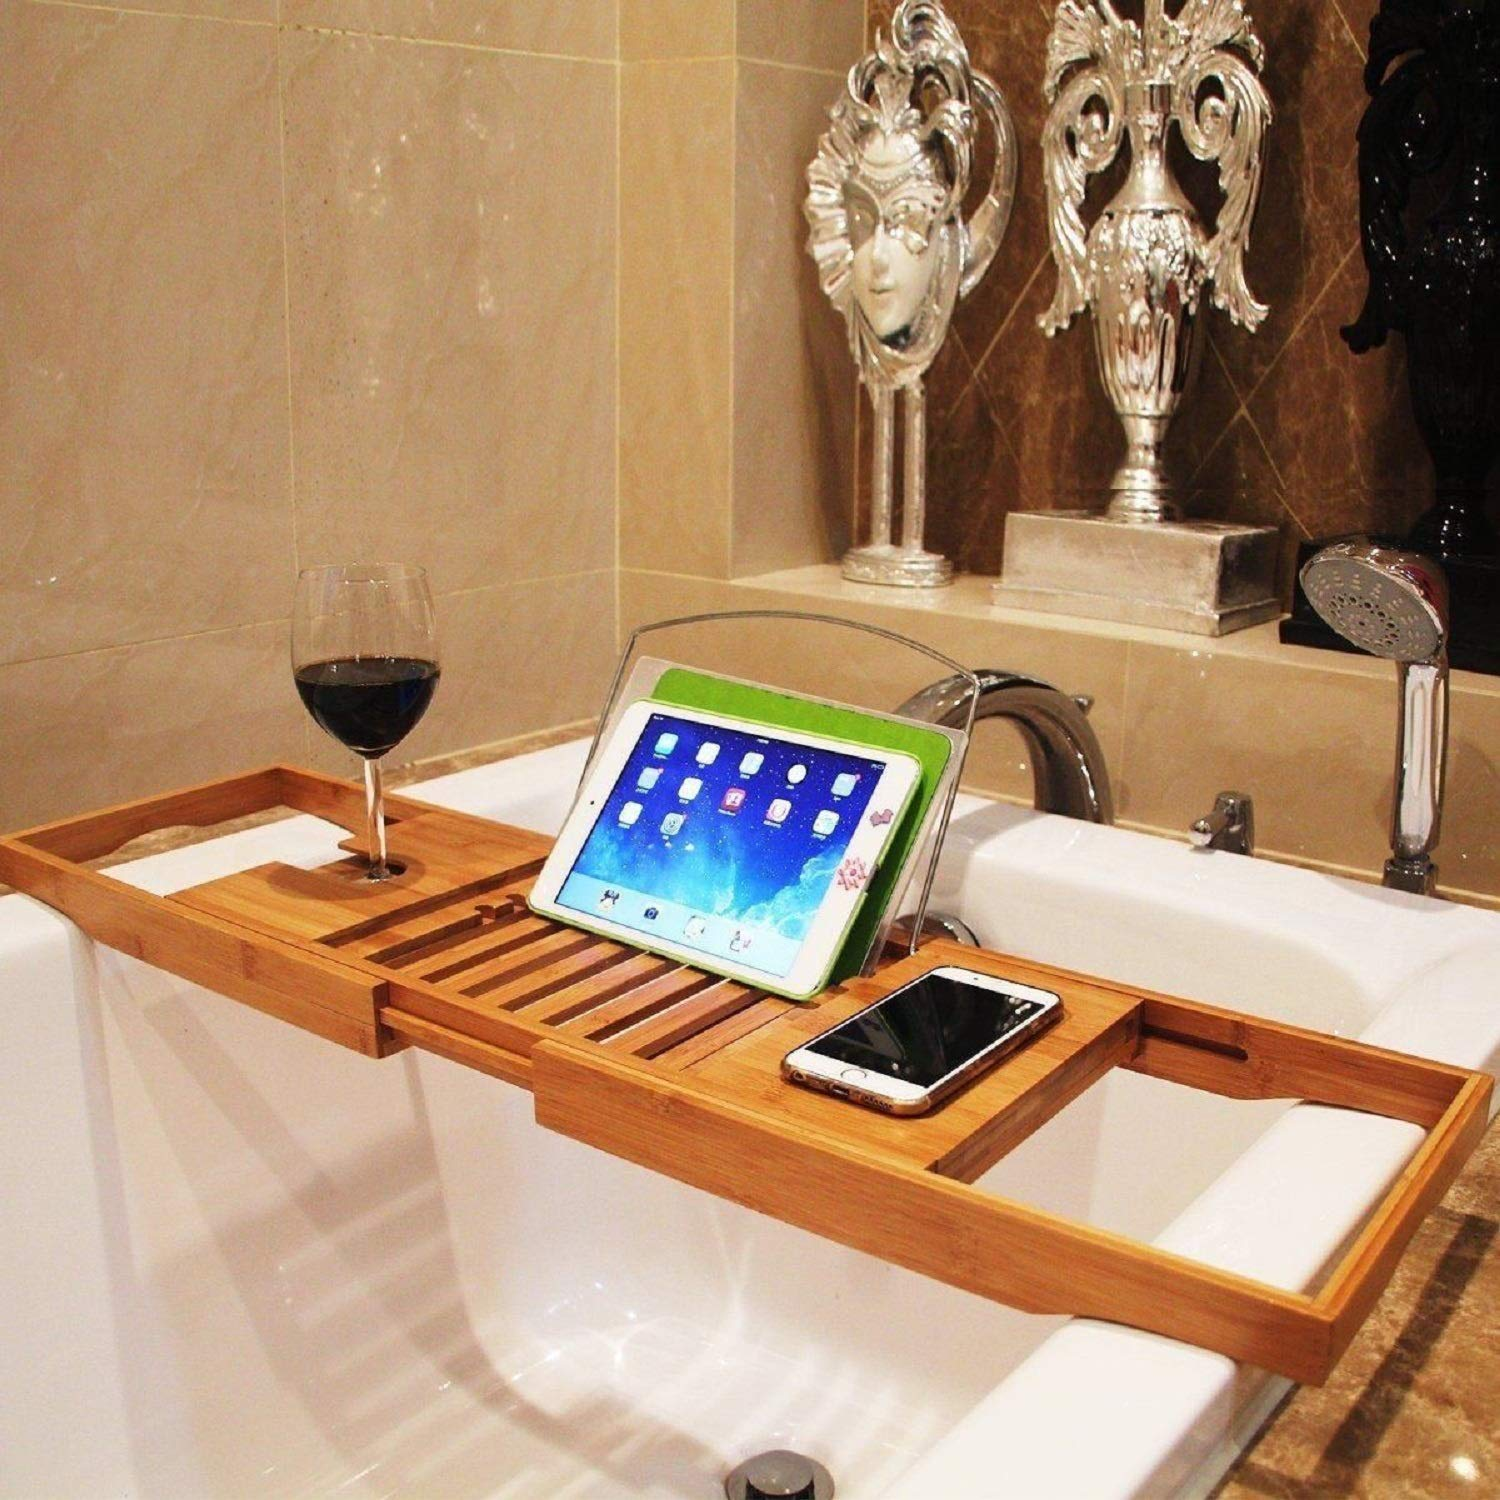 Bamboo Bathtub Caddy Tray Extendable Spa Organizer with Folding Sides Natural Ecofriendly Wood Integrated Tablet Smartphone Wine Book Holders